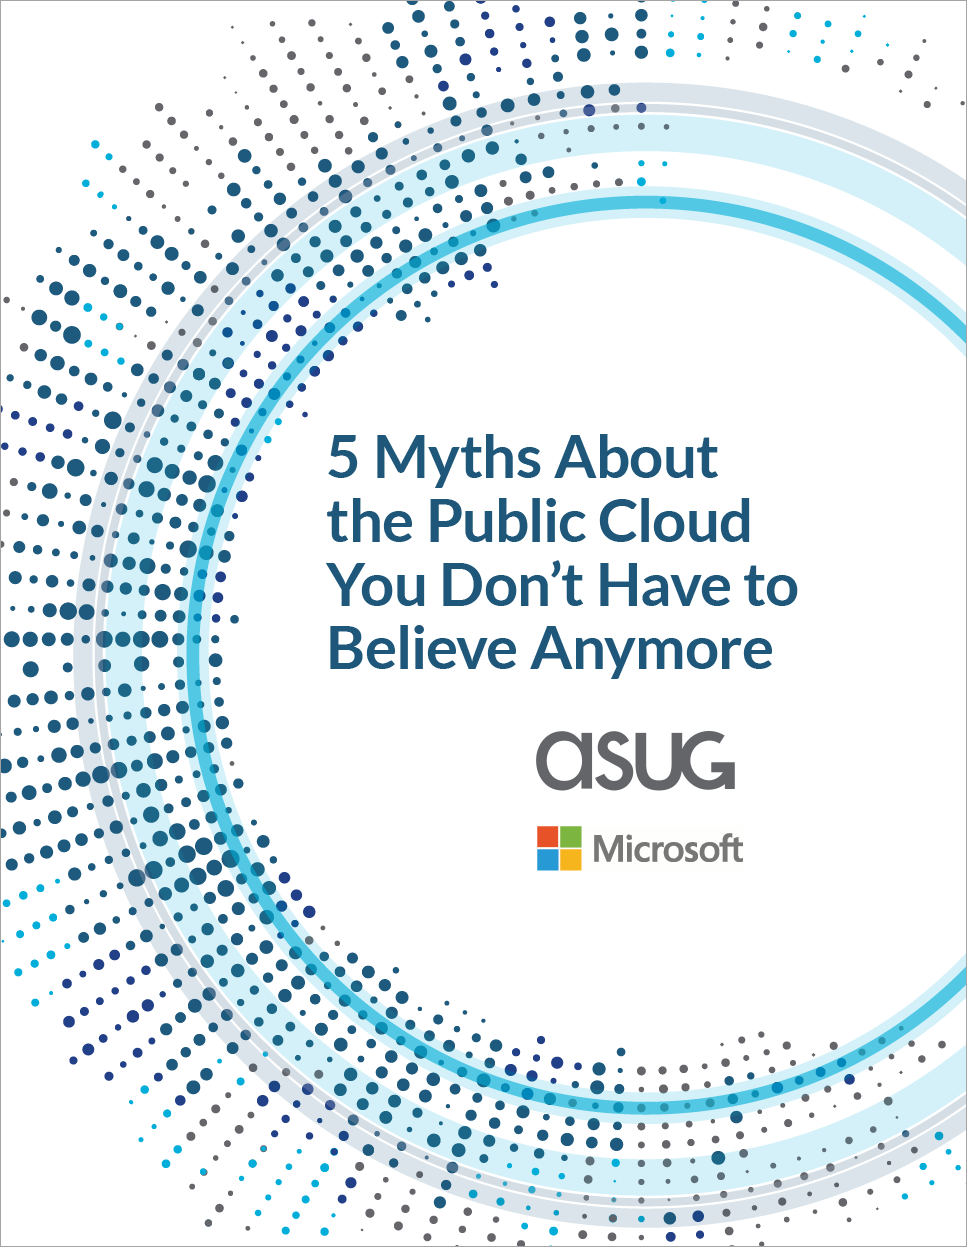 5 Myths About the Public Cloud You Don't Have to Believe Anymore